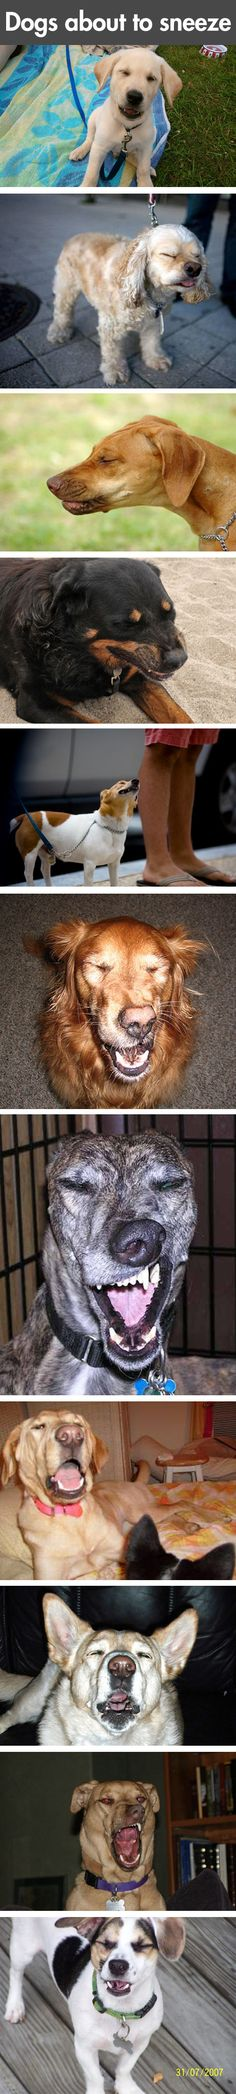 dogs about to sneeze.. This made me laugh harder than it should have... more funny pics on facebook: https://www.facebook.com/yourfunnypics101